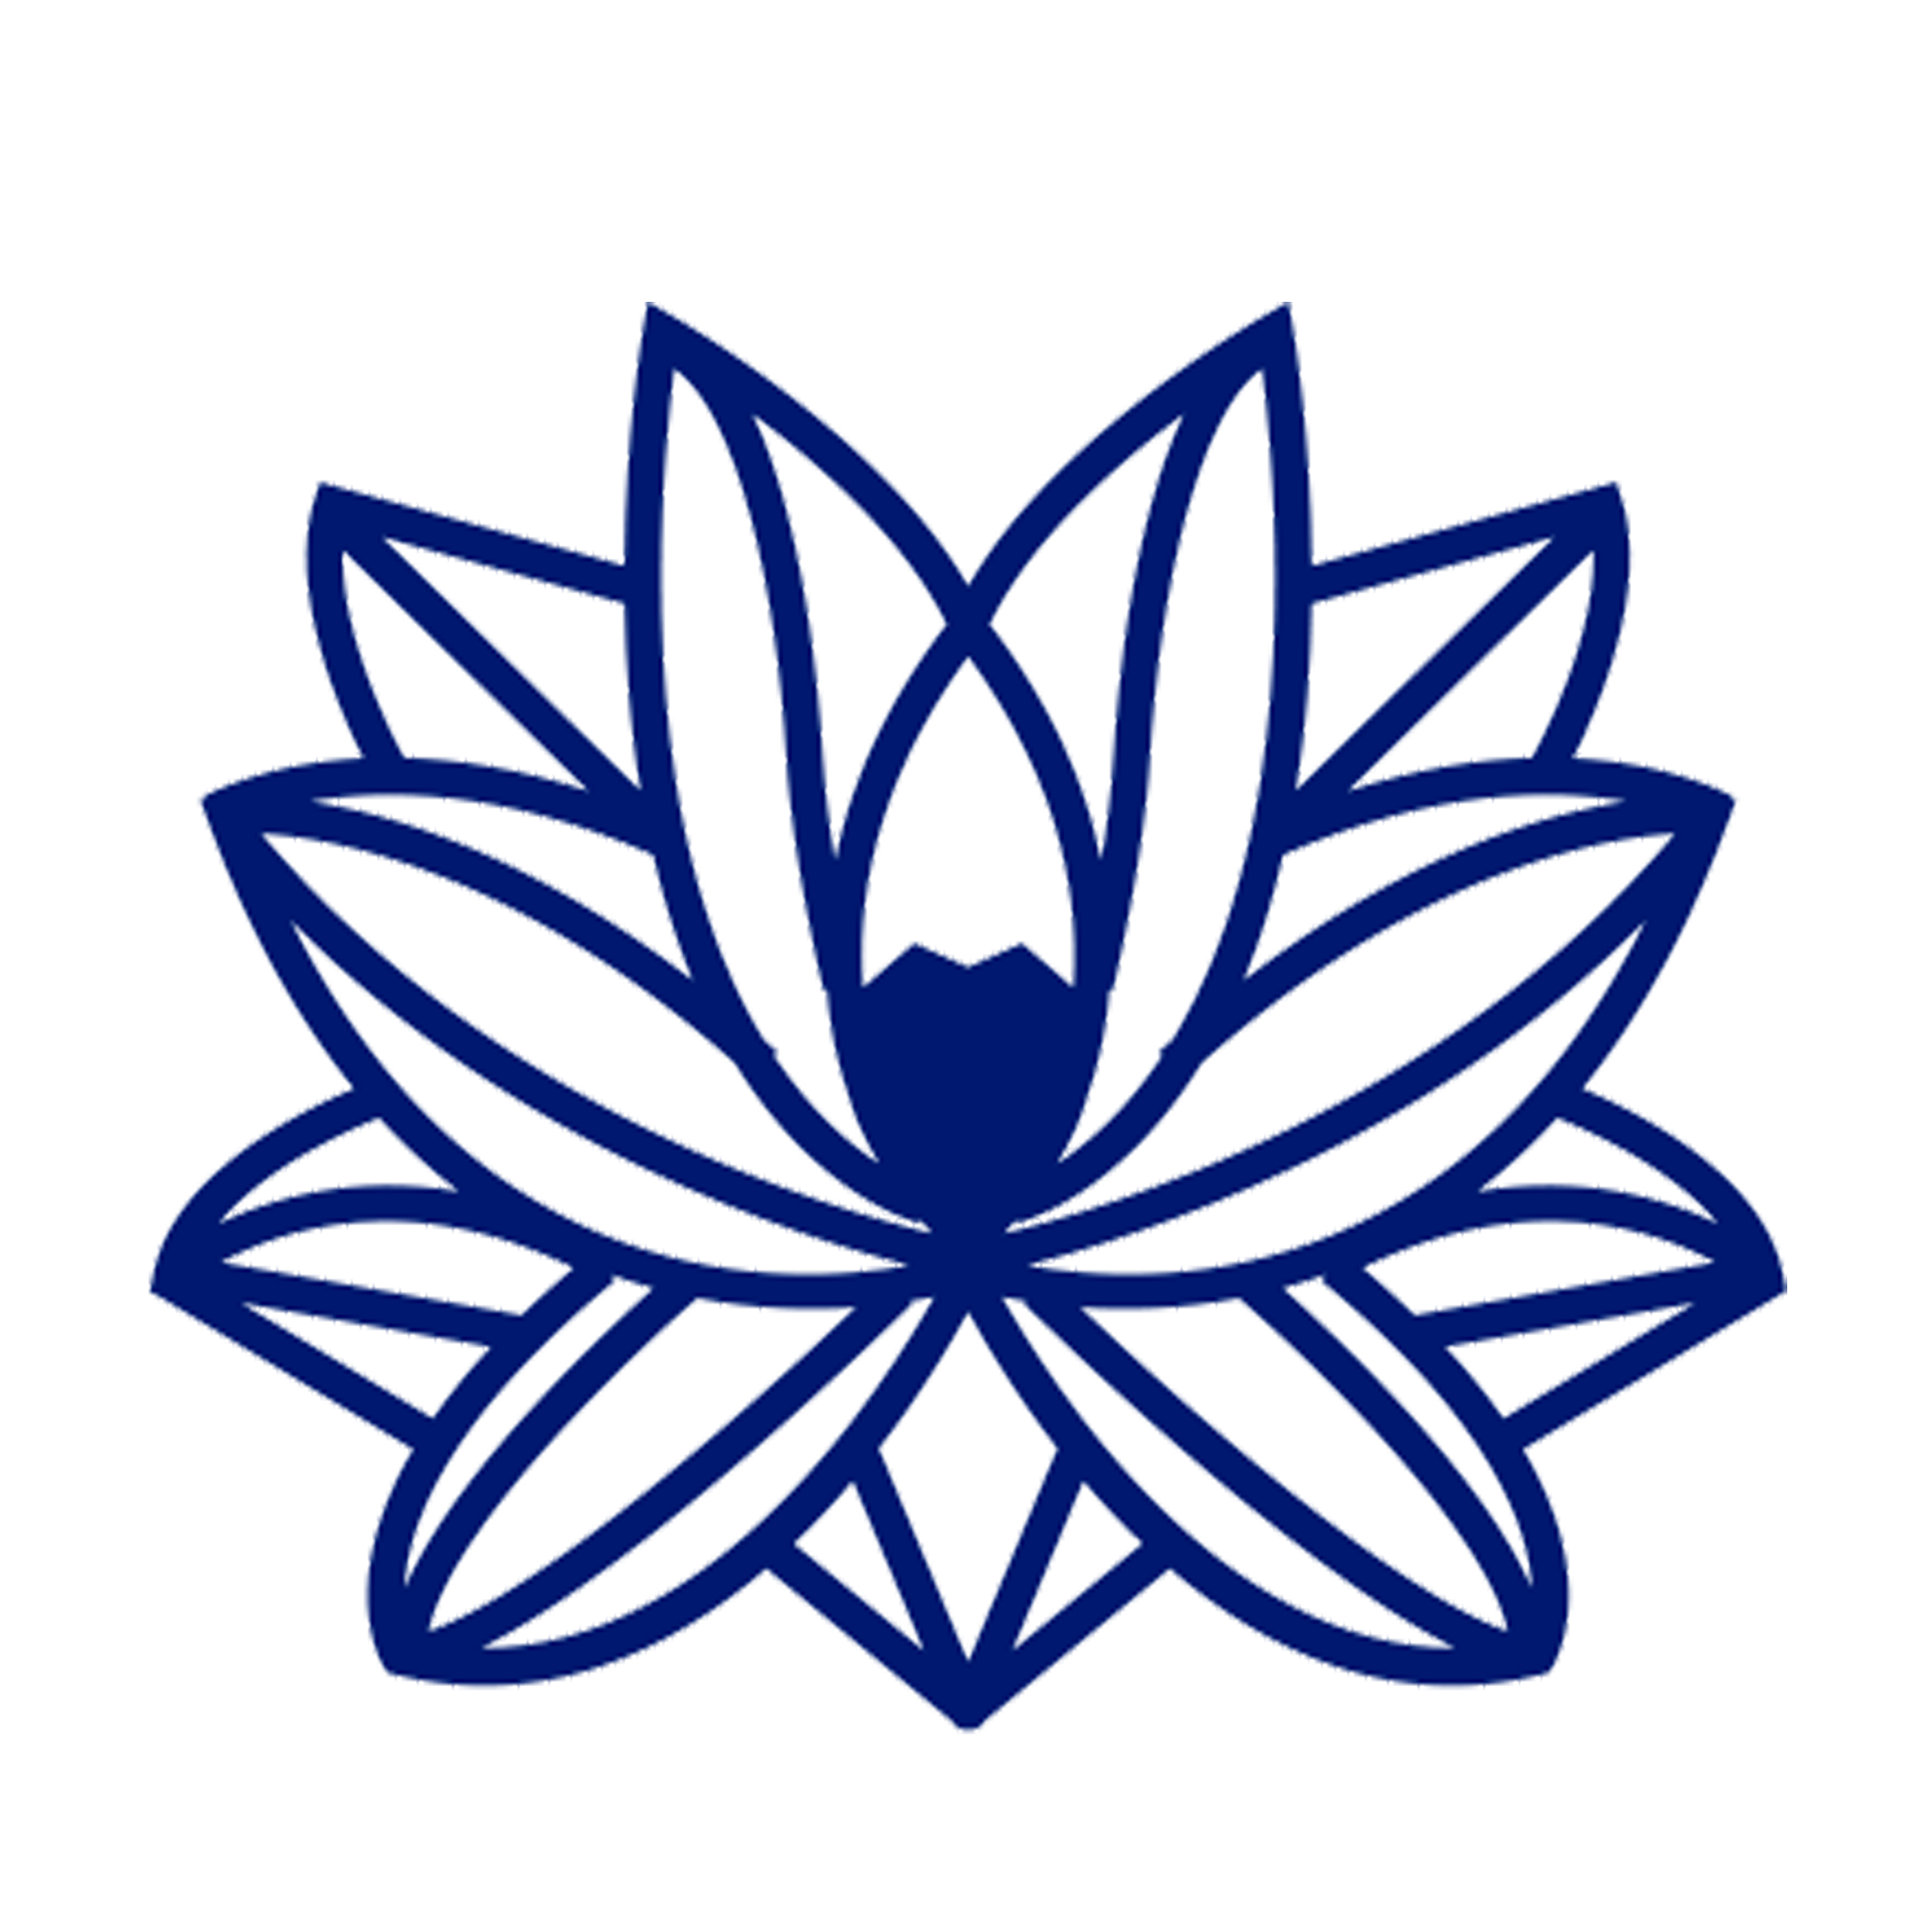 Lotus clipart blue lotus. Clip art country wind